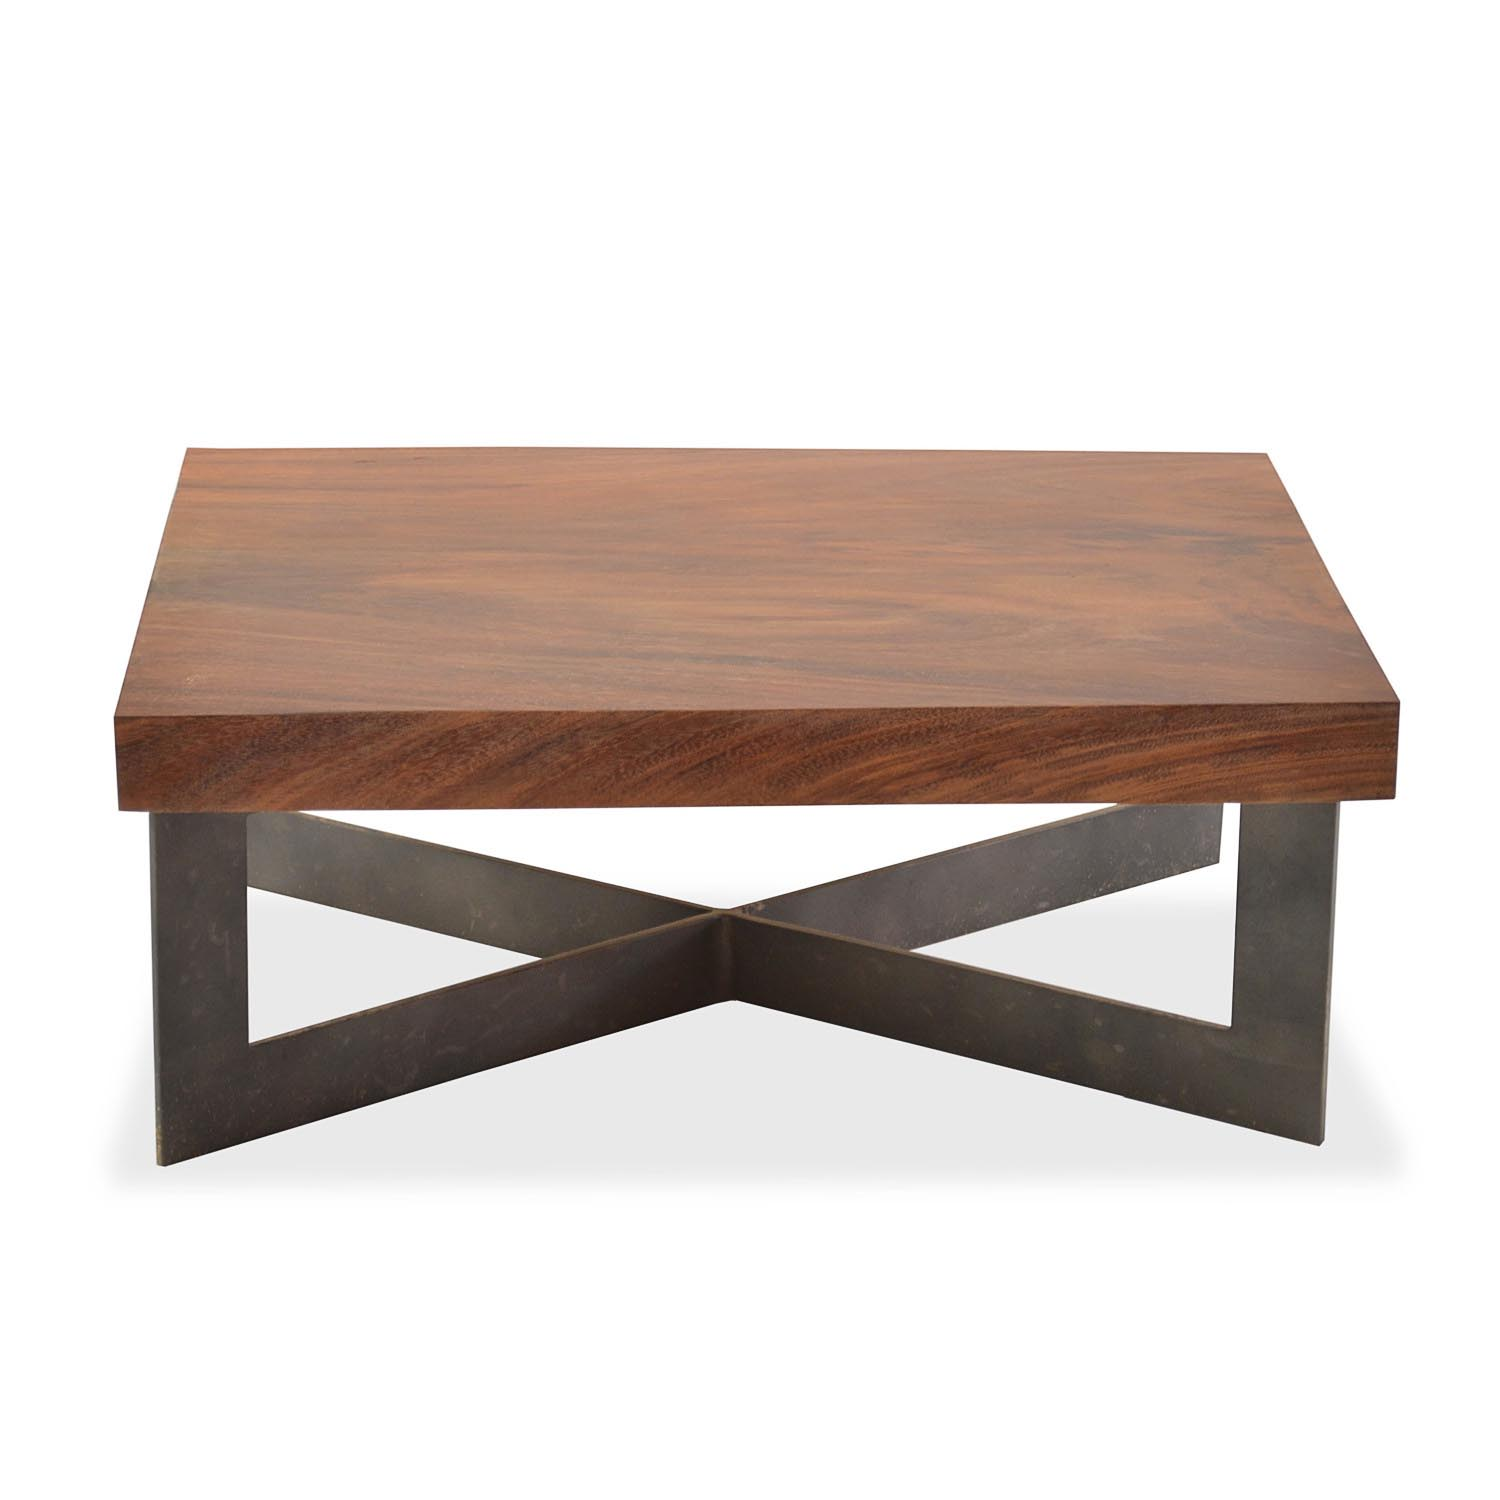 Solid wood slab coffee table coffee table design ideas for Wood slab coffee table